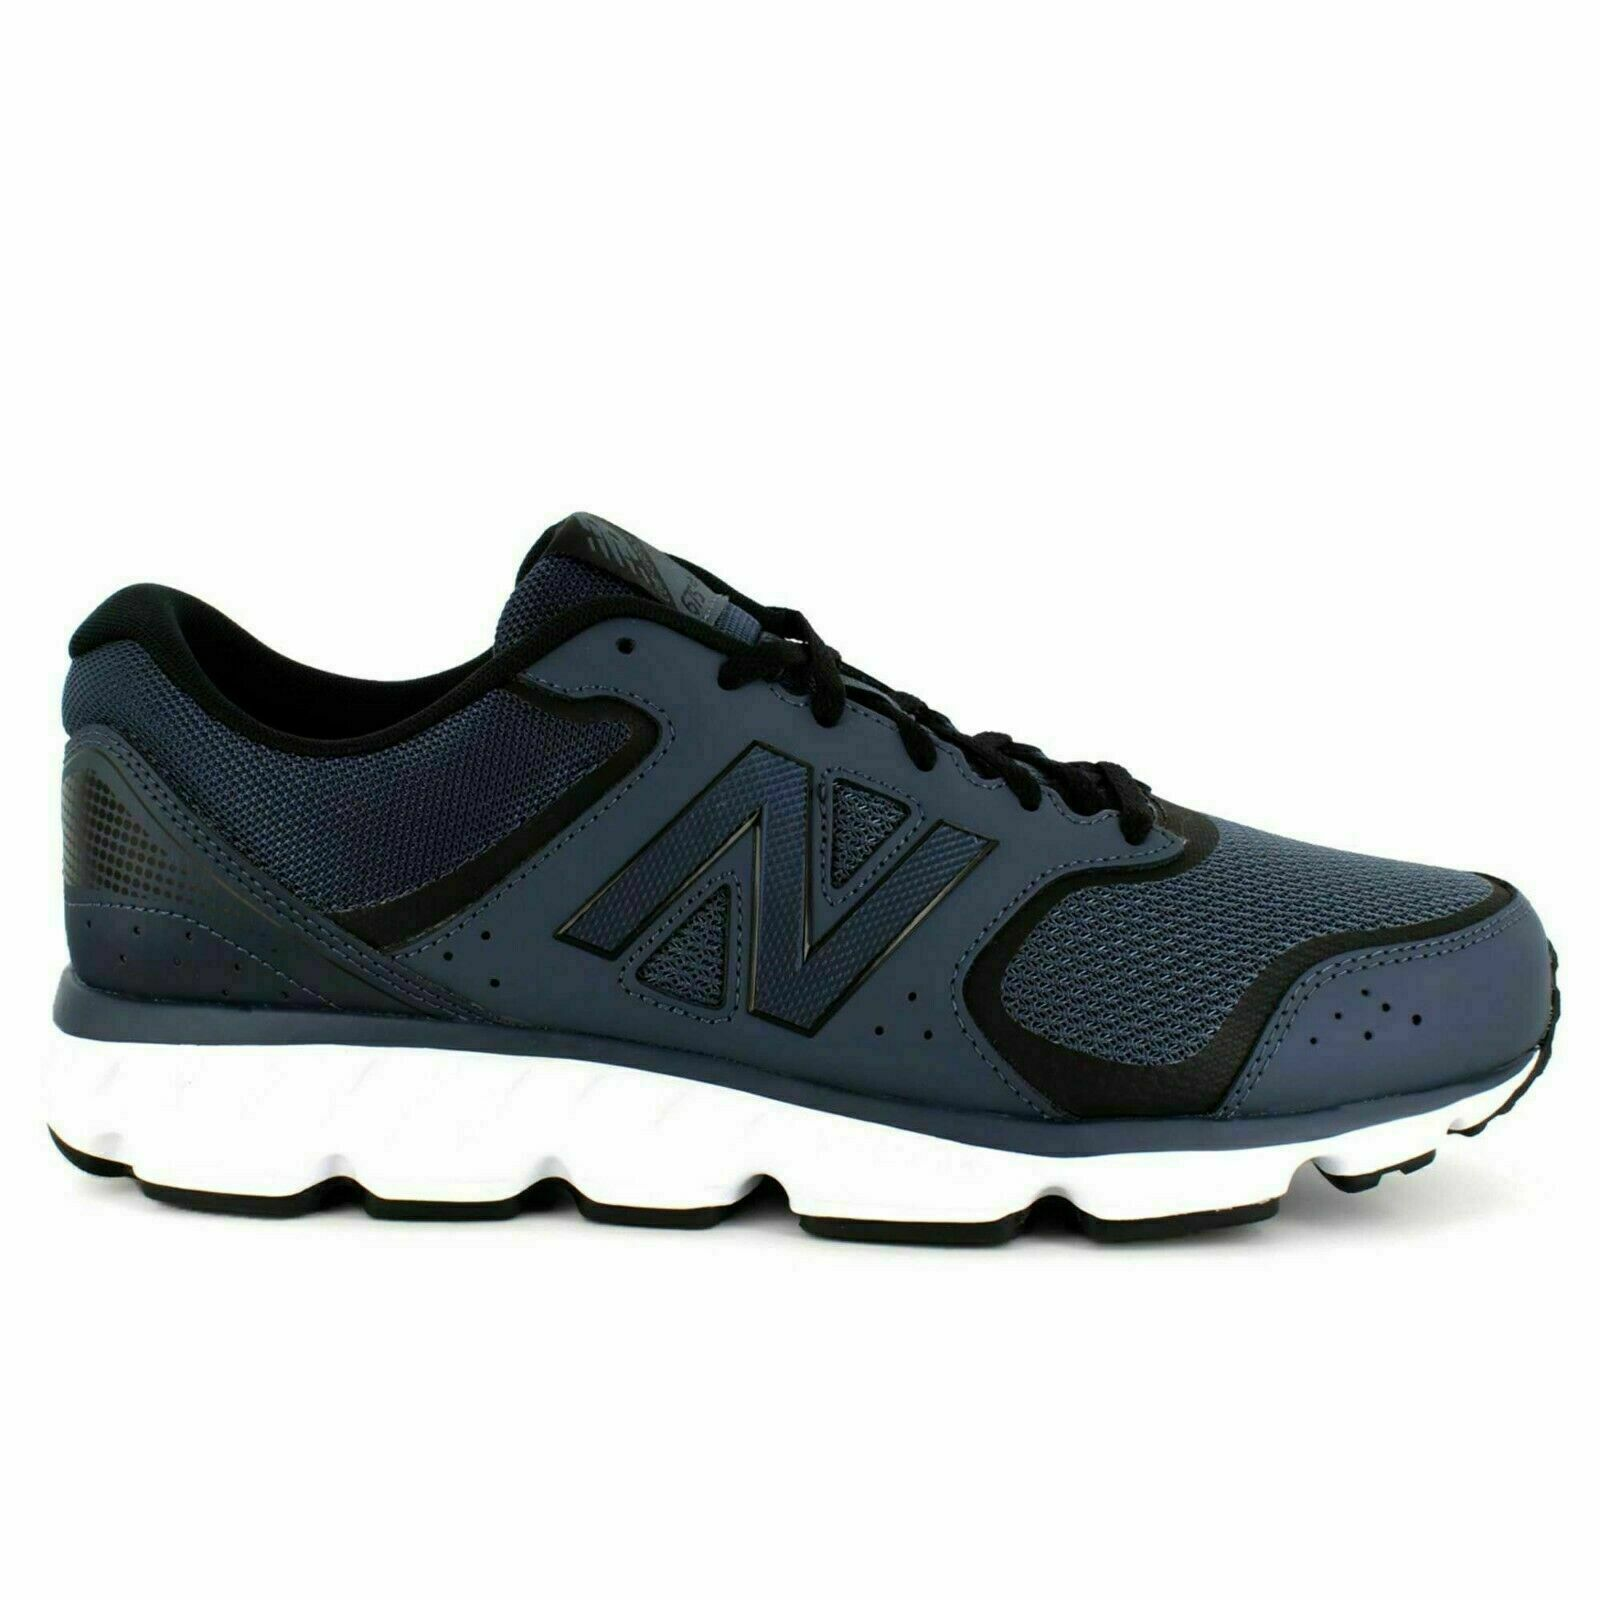 NEW BALANCE M 675 Running shoes Trail   4E WIDTH